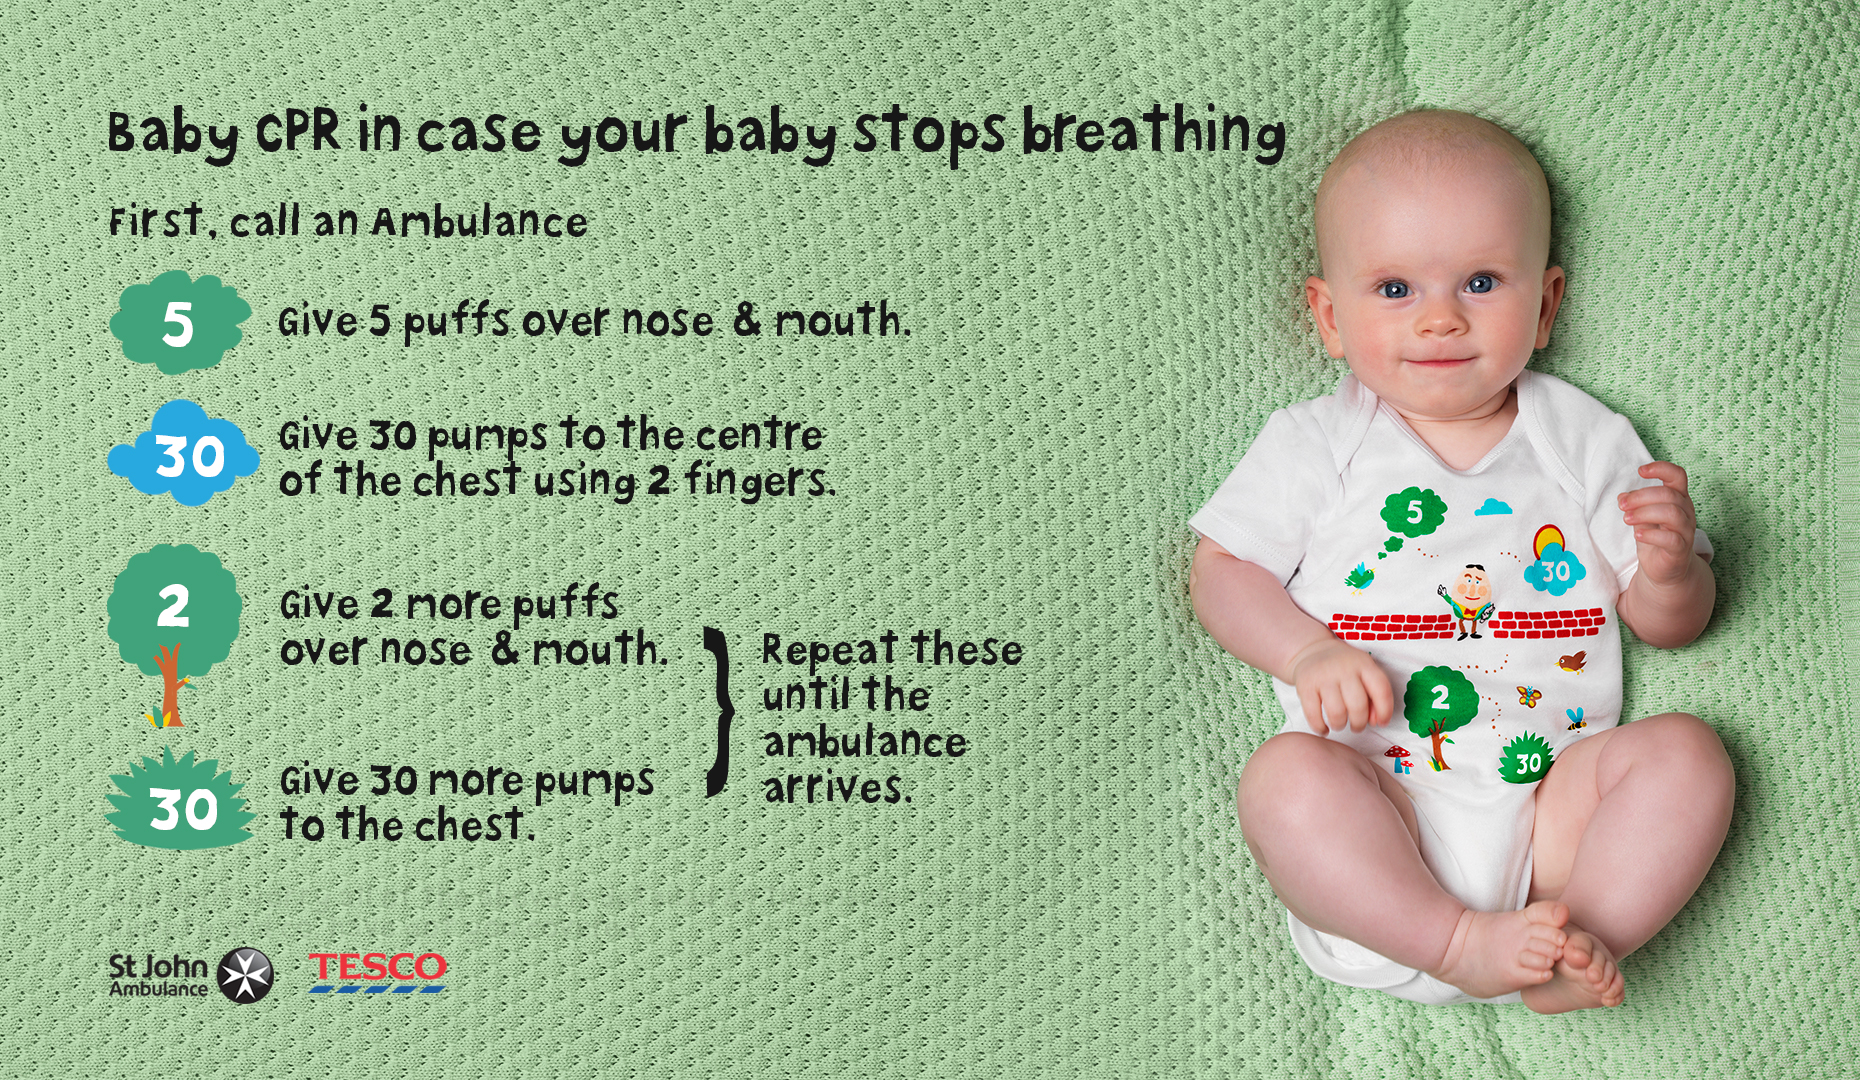 How to do baby CPR - new CPR babygrow campaign from St John Ambulance and Tesco